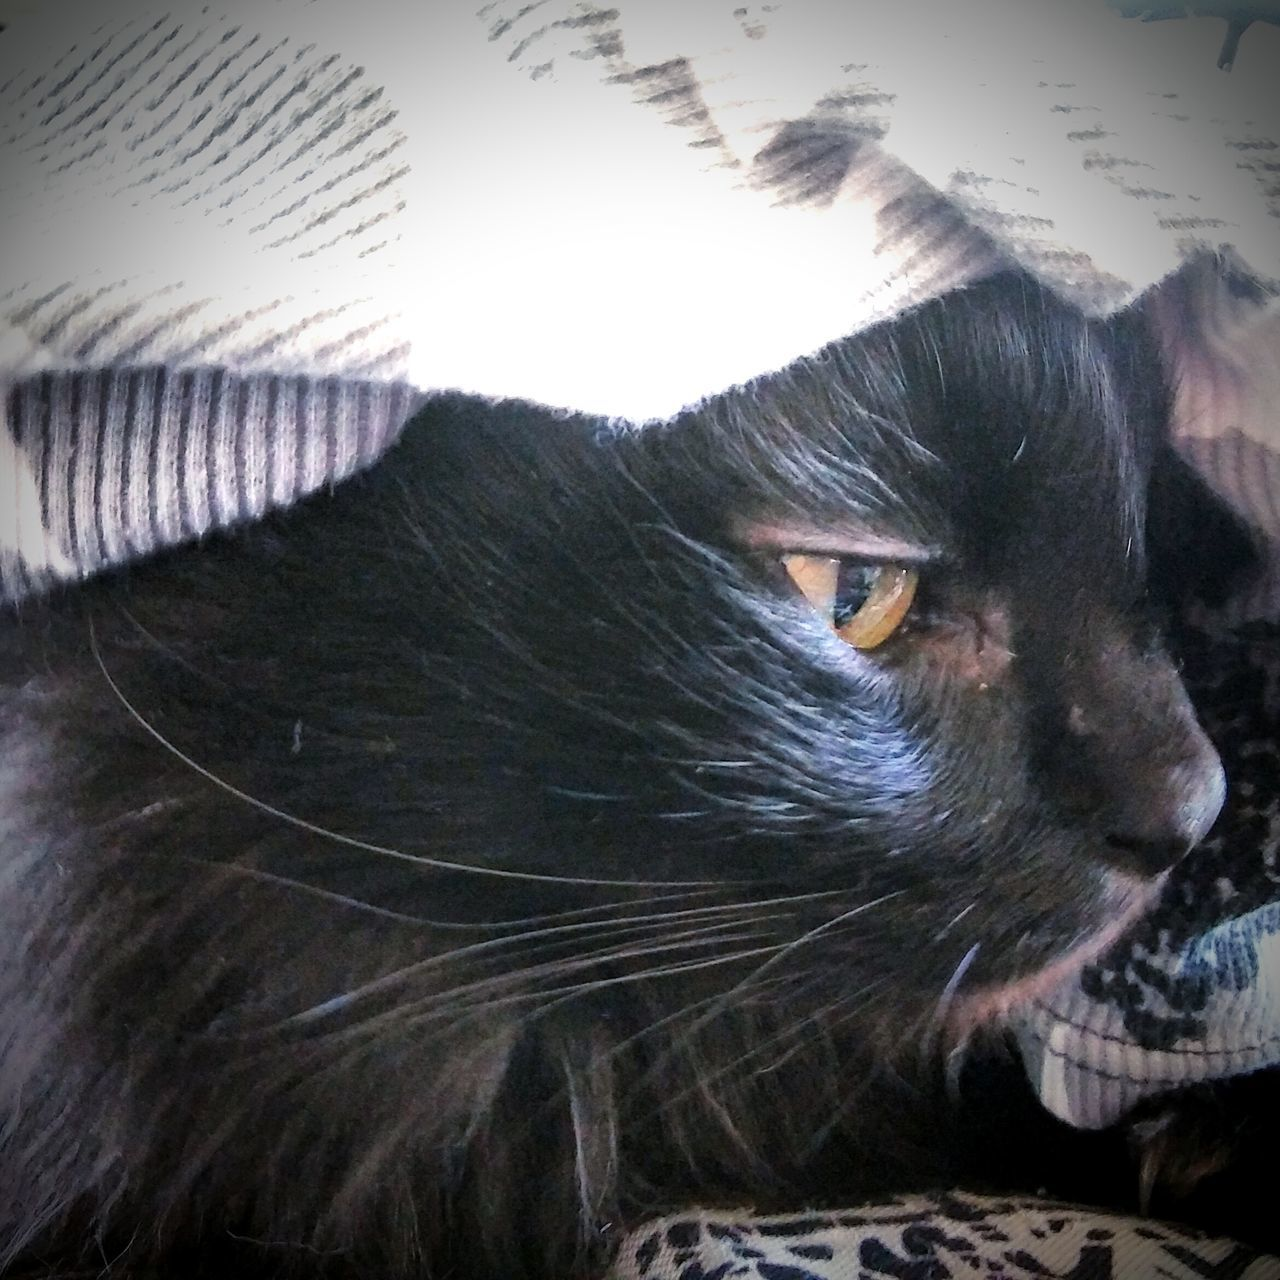 Teddiebear...pondering...💜💜💜💙💙💙 Hanging Out Check This Out Taking Photos Hello World Cheese! Relaxing Animals Pawsome Beautiful Eyes Cat Eyes Catsofeyeem Bayareaphotography Animal Photography Hayward Ca Catstarcat Catlovers Paws And Purrs Blackcatbeauties ❤️🔥❤️ Loveallanimals Precious Little Moments Blackcats Blackcatsrule